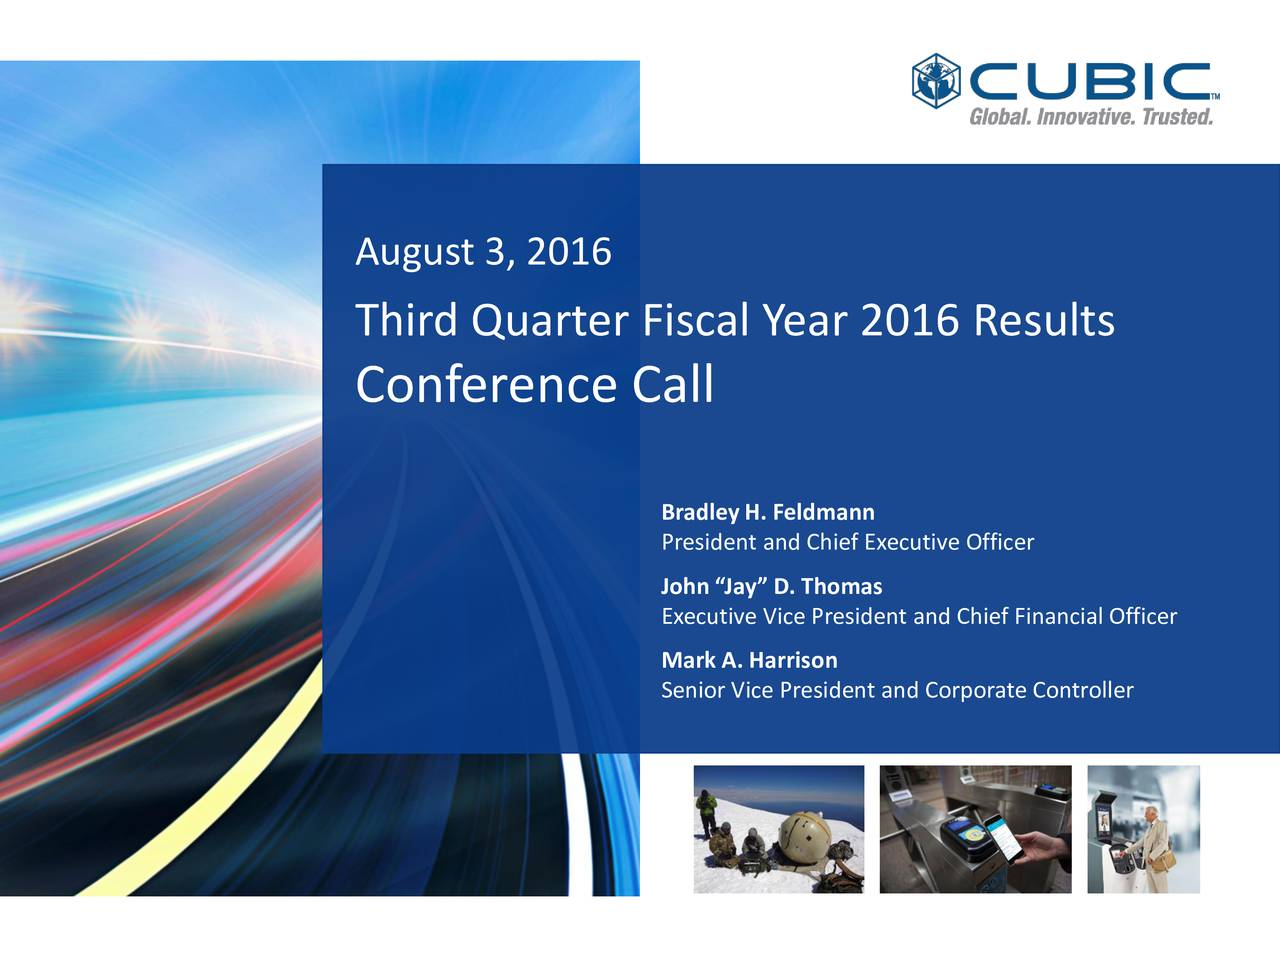 Third Quarter Fiscal Year 2016 Results Conference Call Bradley H. Feldmann President and Chief Executive Officer John Jay D. Thomas Executive Vice President and Chief Financial Officer Mark A. Harrison Senior Vice President and Corporate Controller